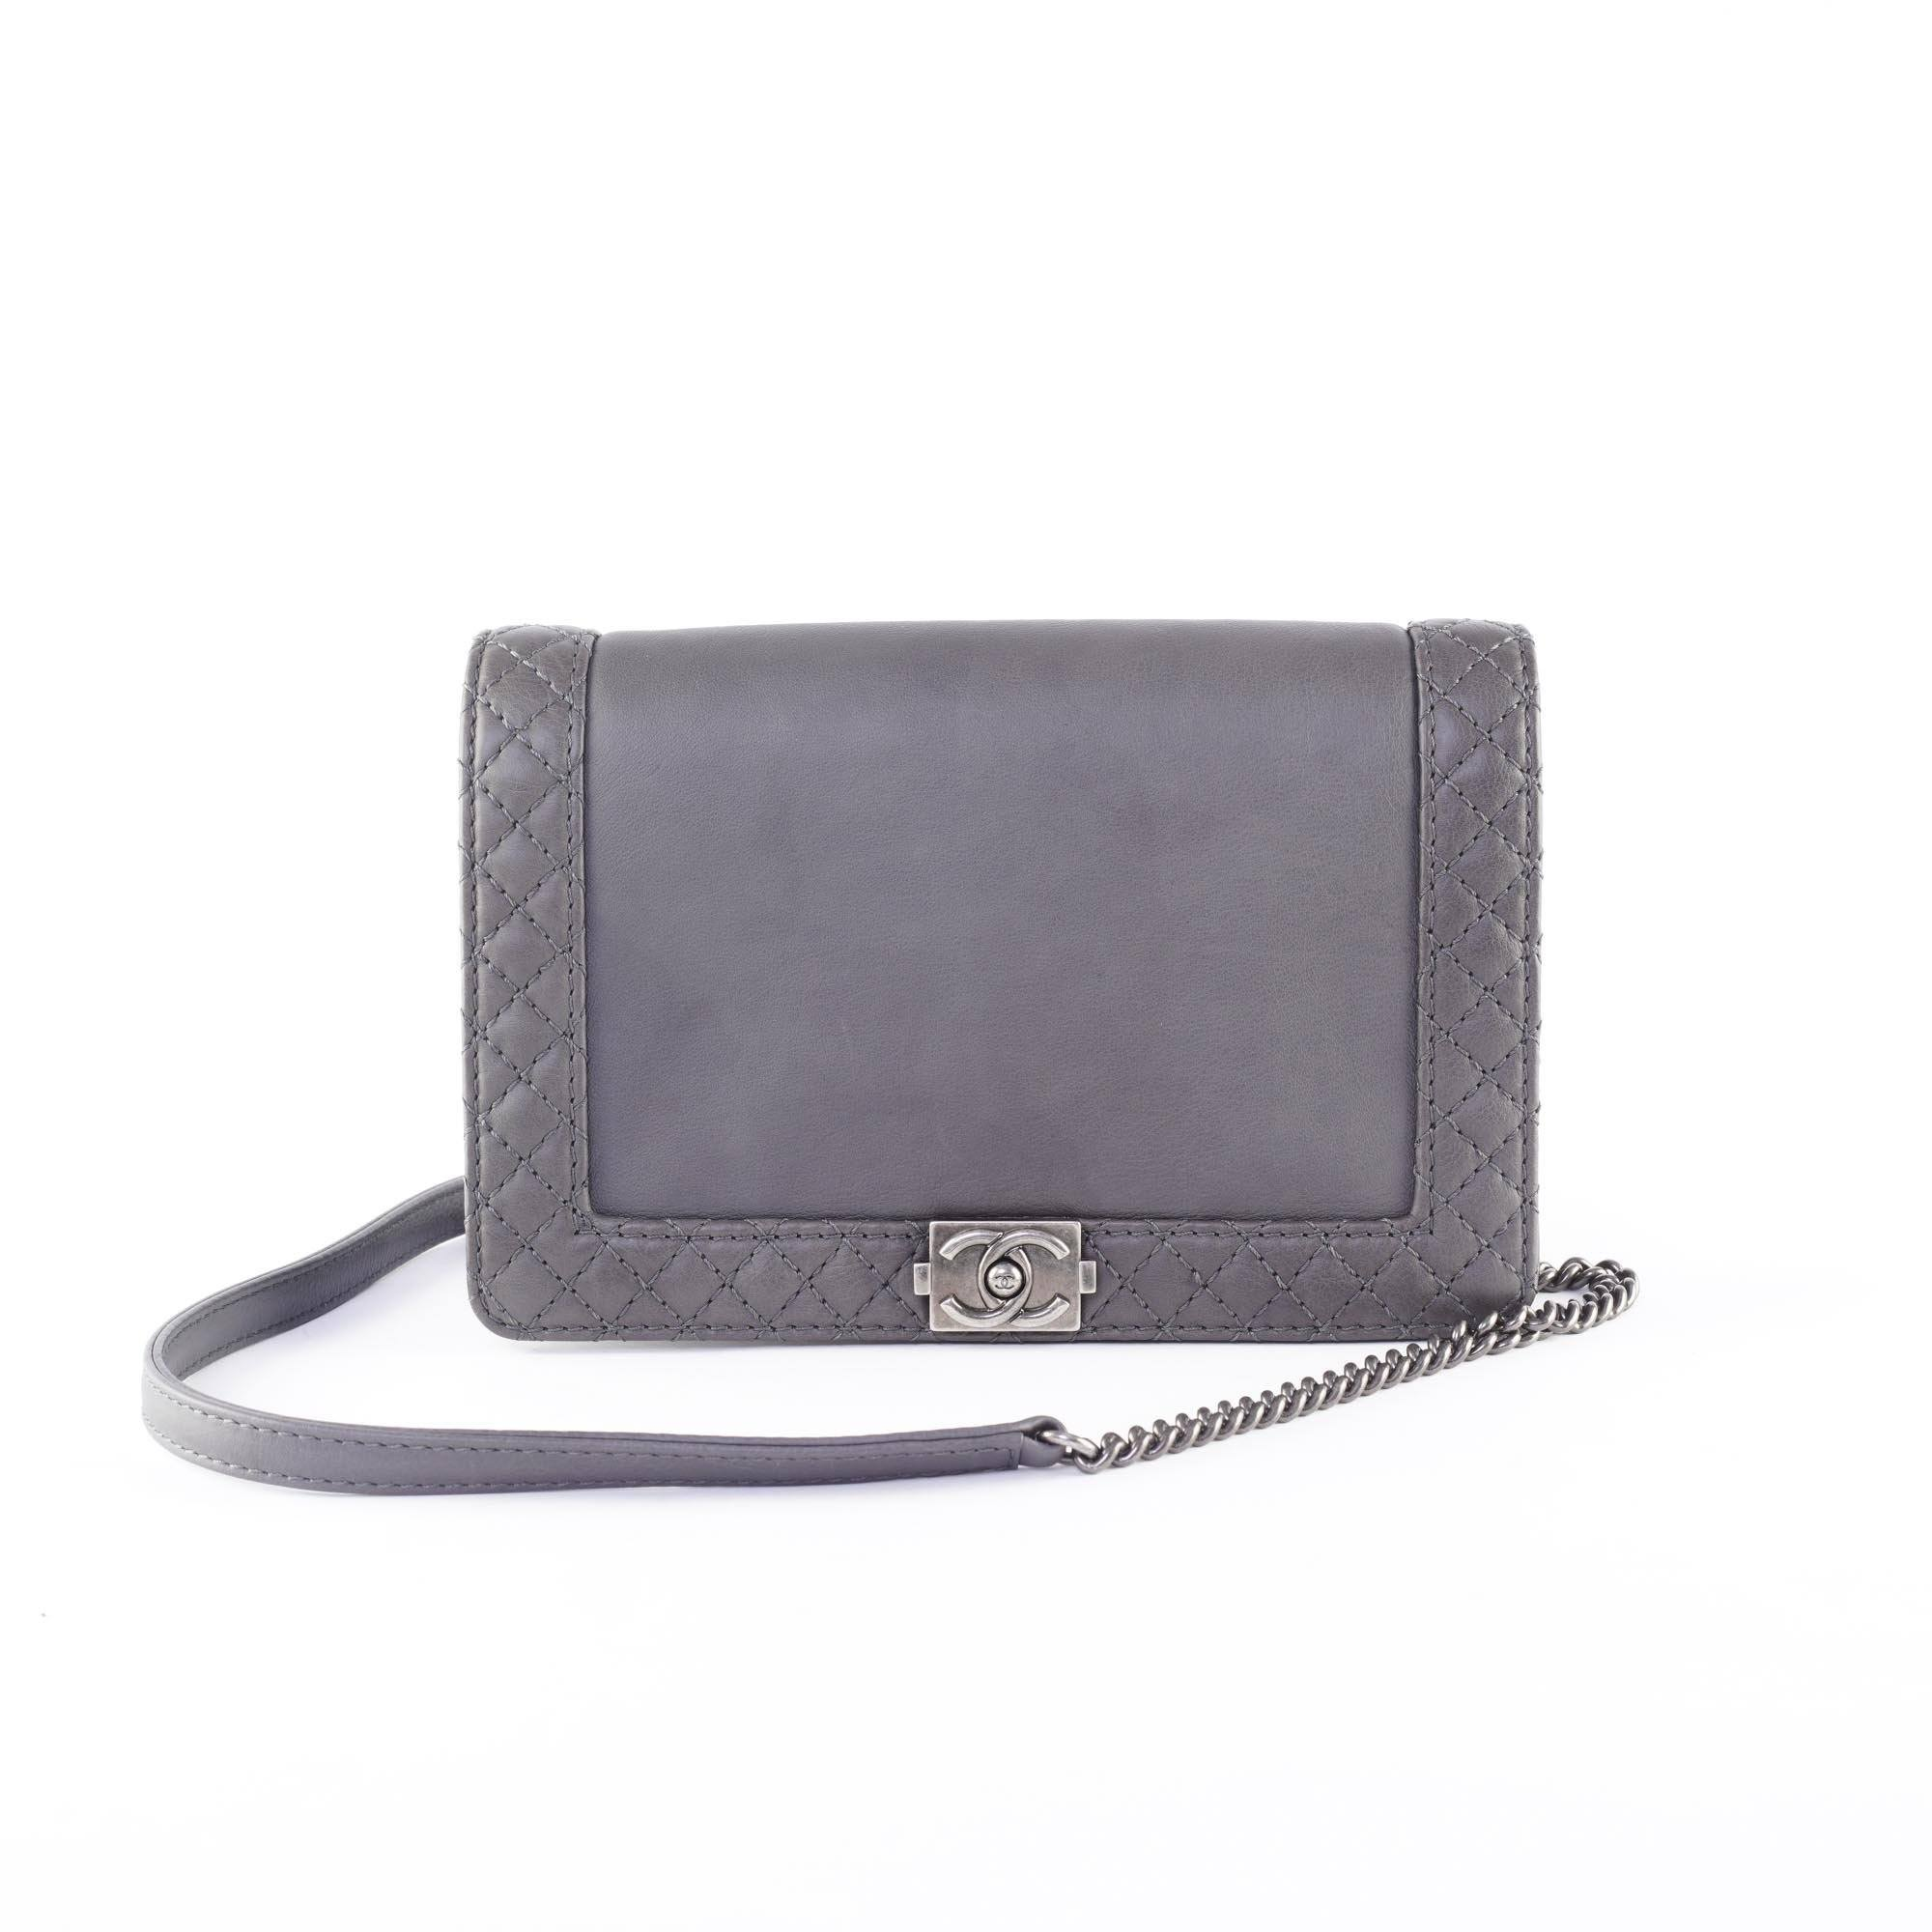 3a6c965778ef Chanel Grey Calfskin Medium Le Boy Reverso – Garderobe